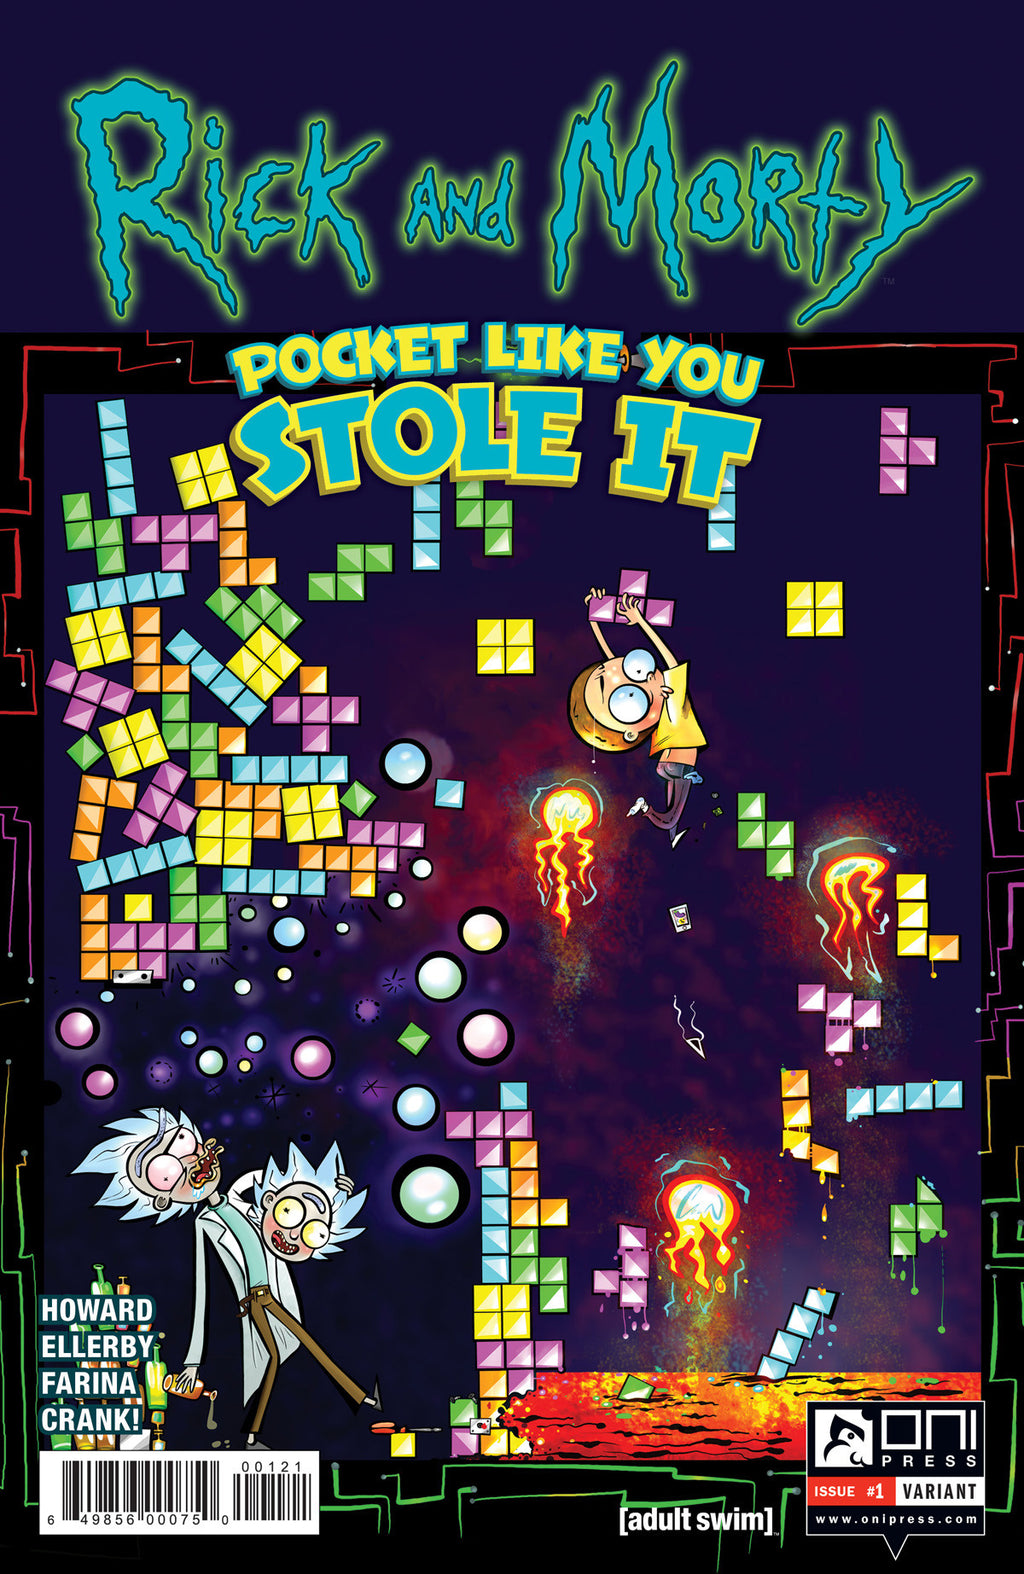 Rick and Morty: Pocket Like You Stole It #1 - Cover B